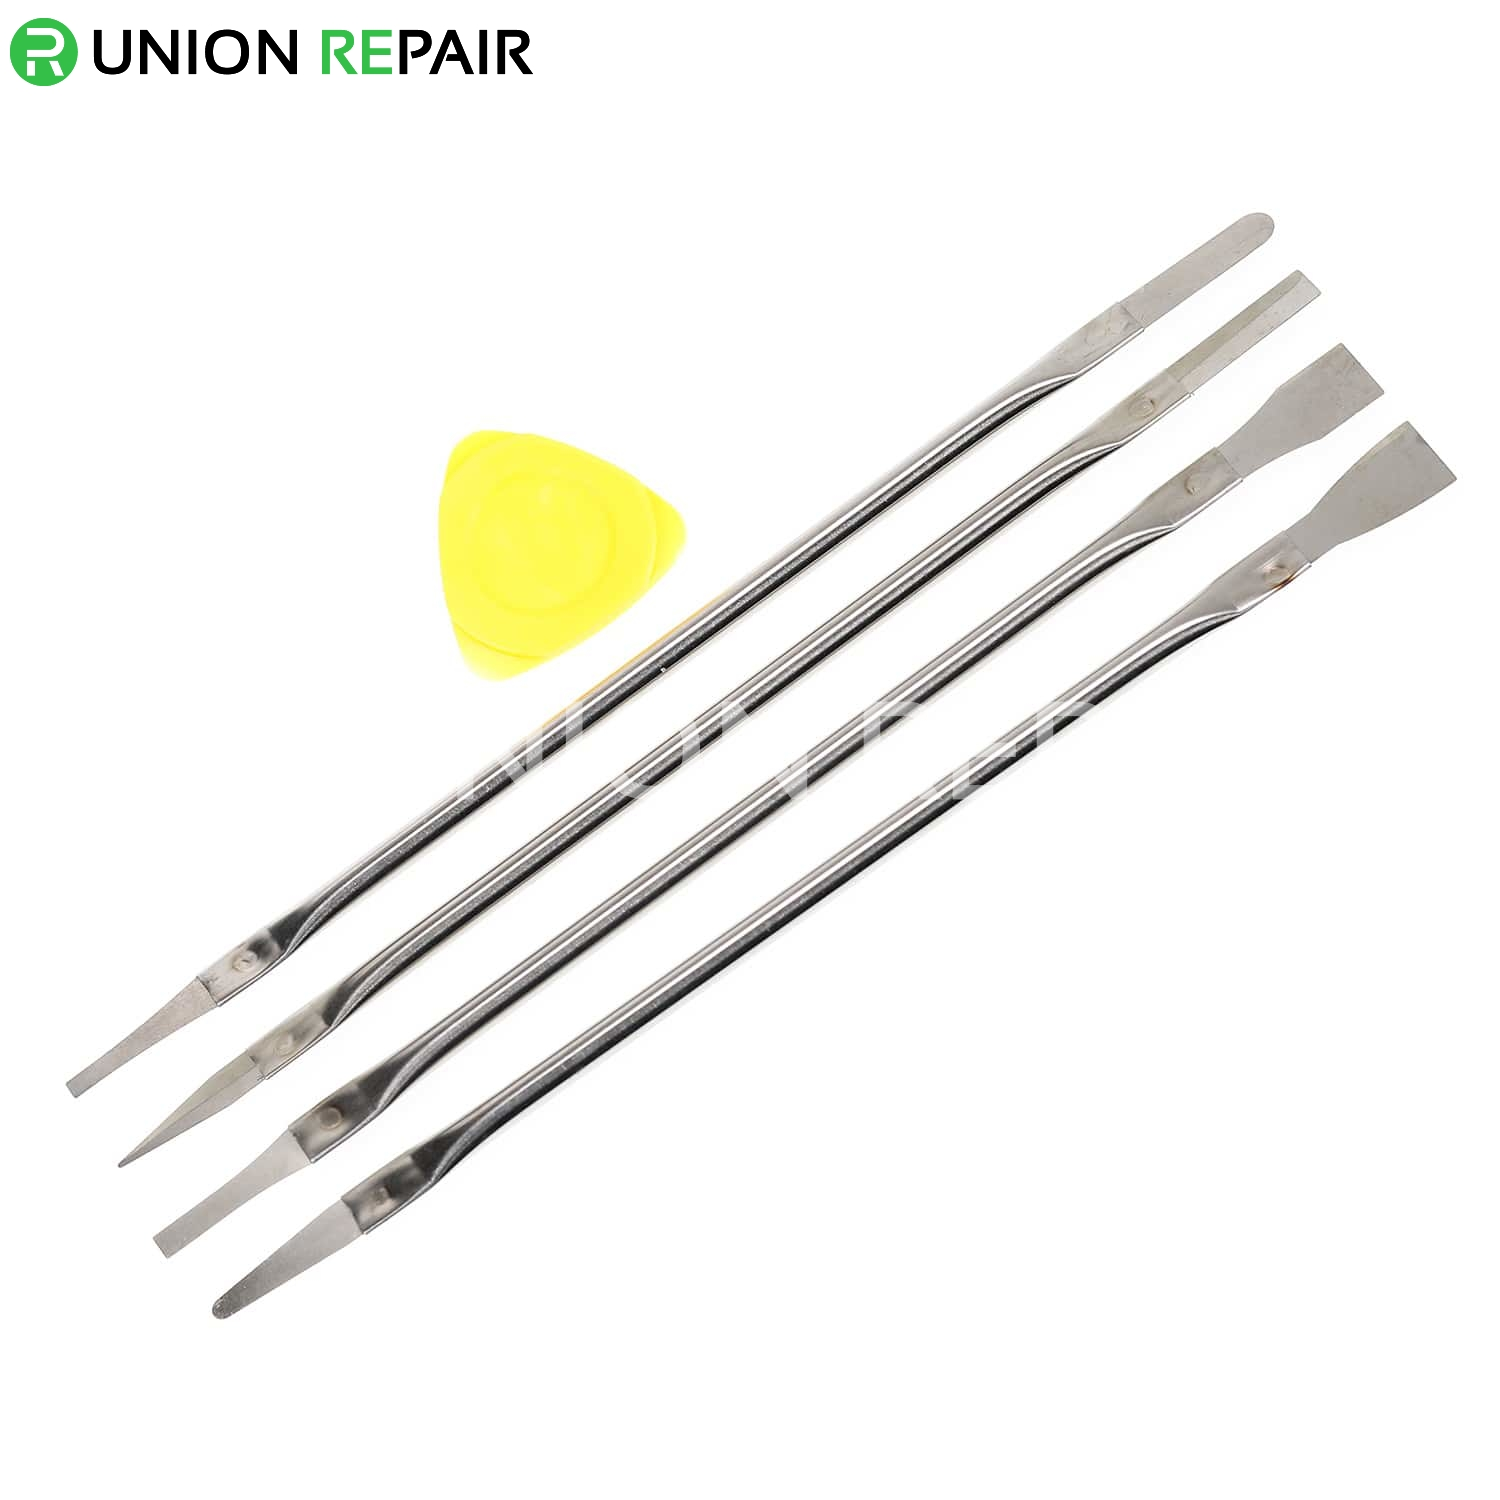 4in1 Ultra-thin Alloy Steel Spudger Pry Bar